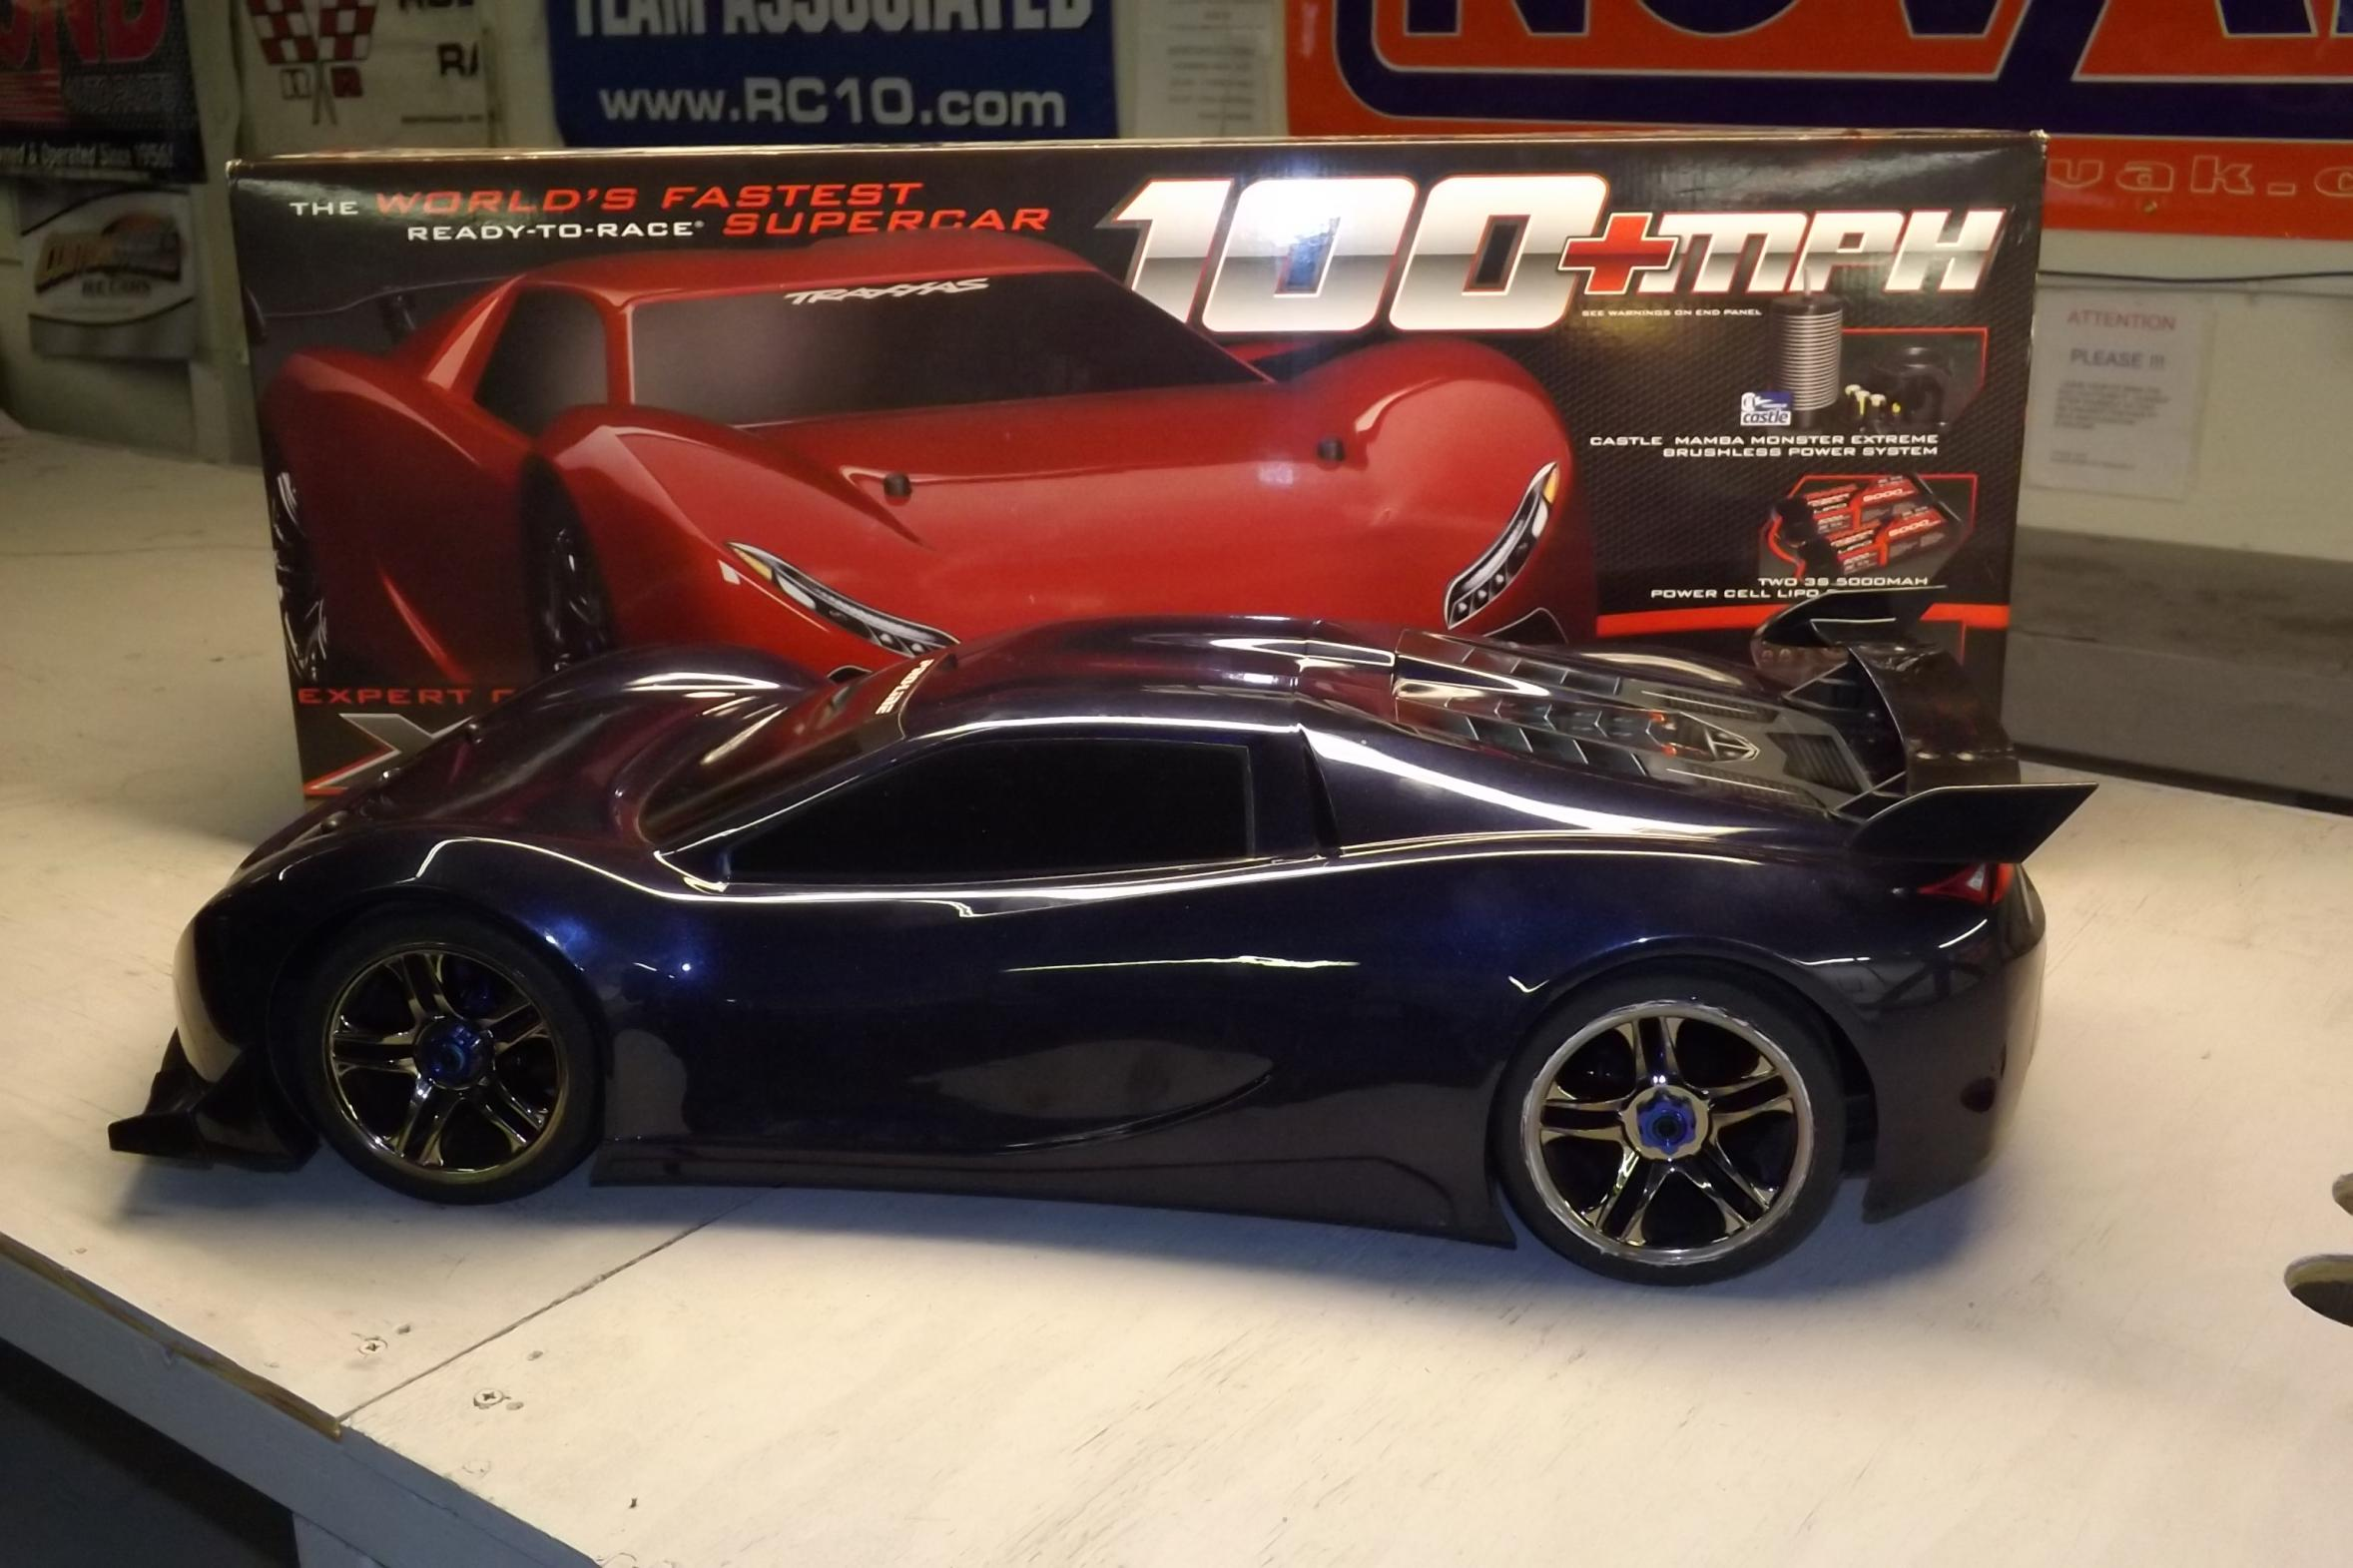 Used Batteries For Sale >> TRAXXAS XO - 1 1/7 SUPERCAR W/ UPGRADES 100 + MPH CAR RTR - R/C Tech Forums